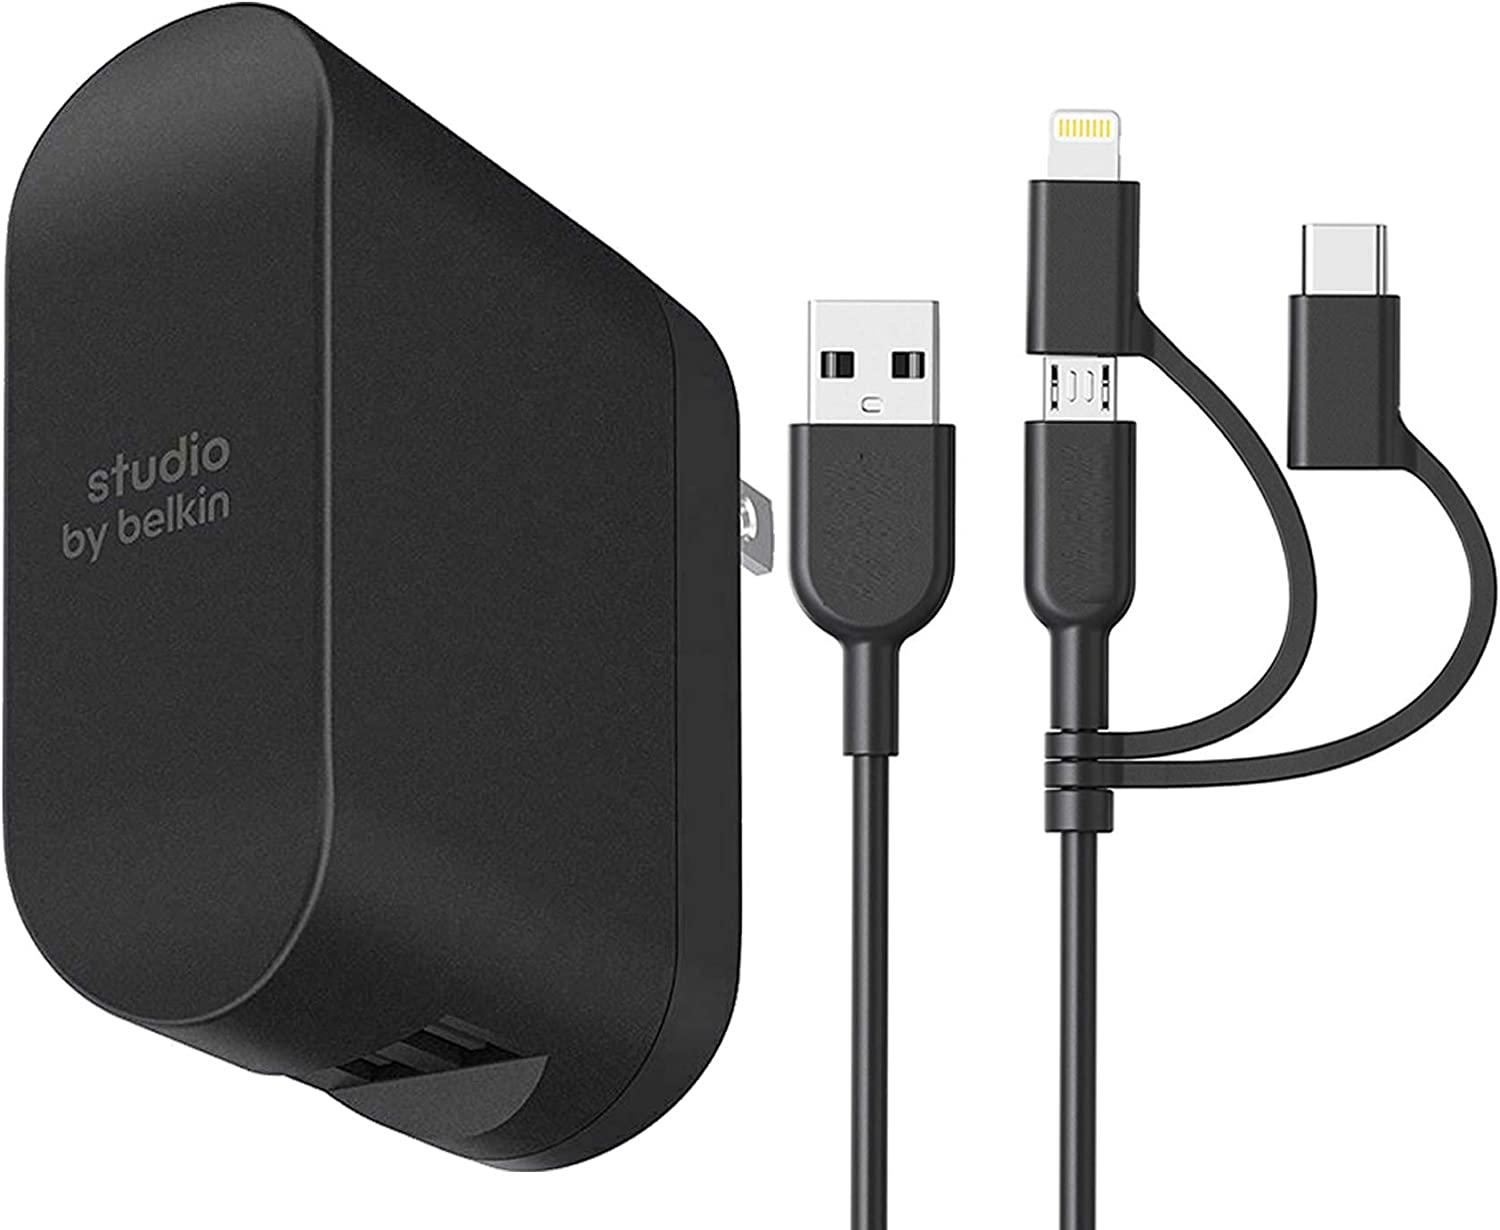 Belkin Boost Charge 2-Port Wall Charger – 24W Multi-USB Charger 4.8Amp with 3in1 USB Cable (for iOS & Android)